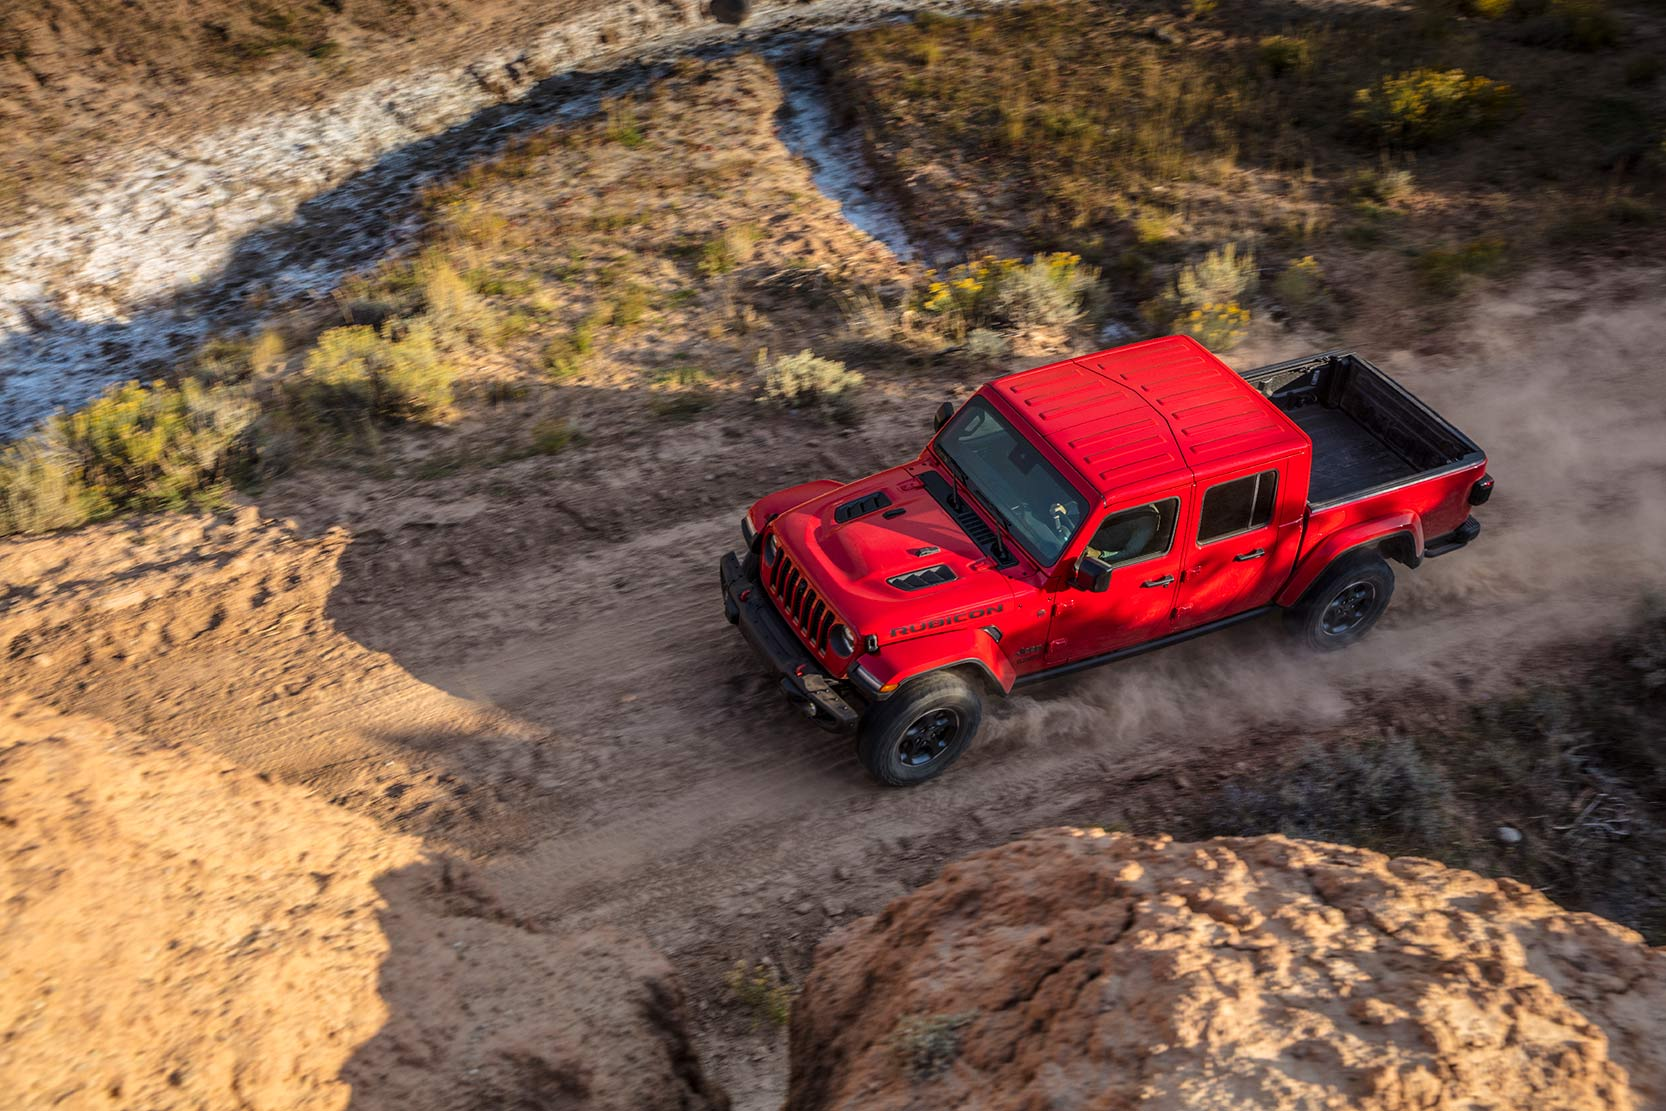 Exterieur_Jeep-Gladiator_118